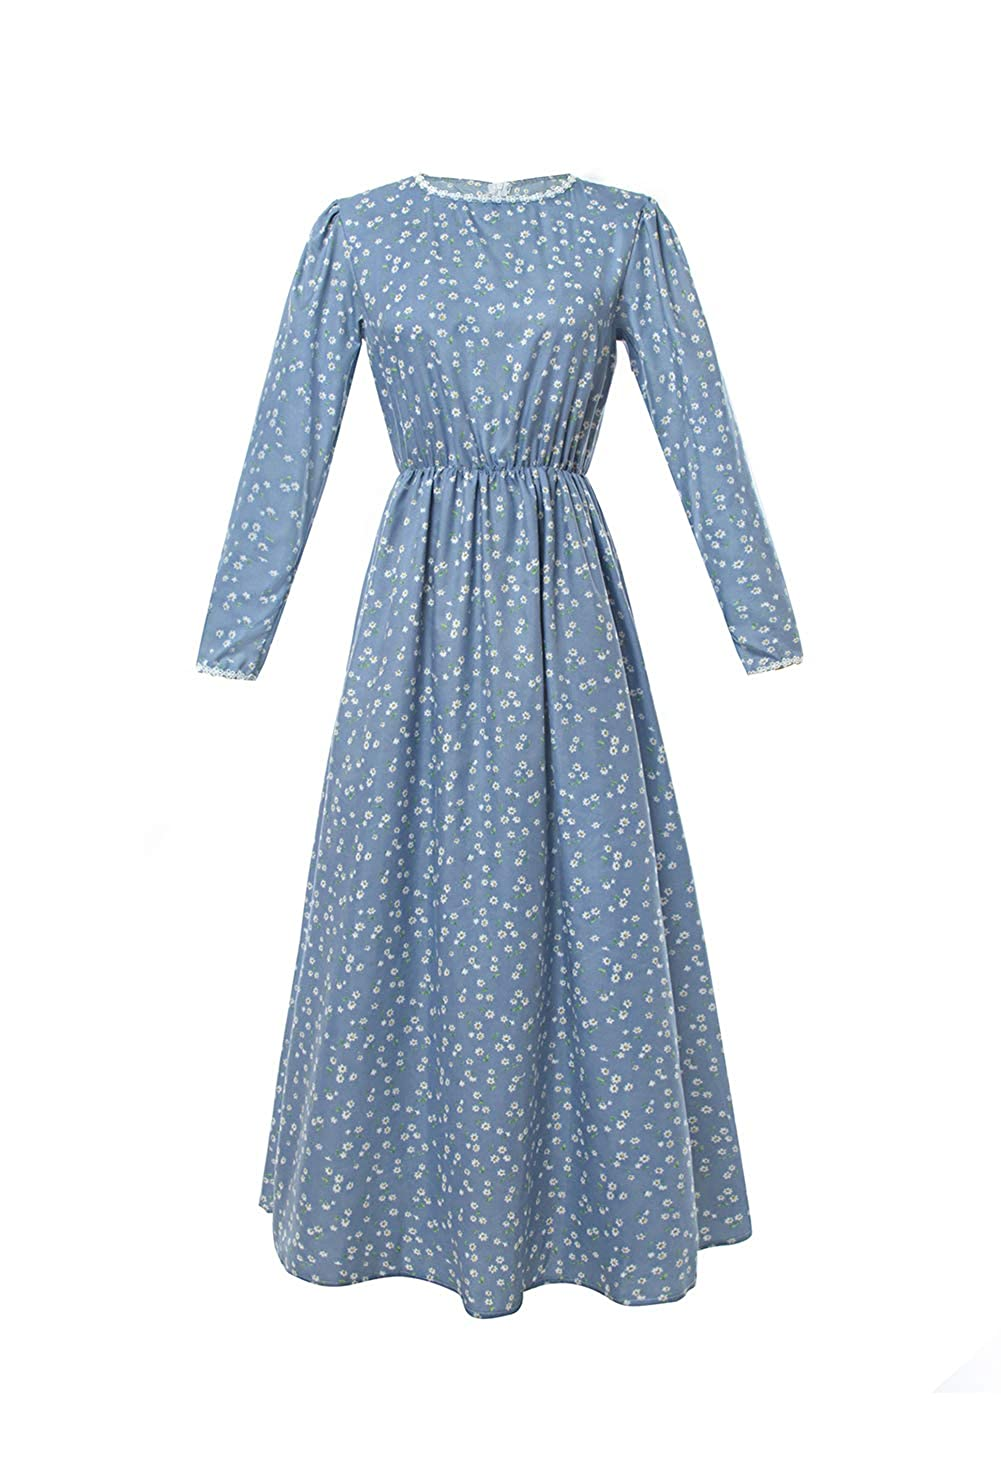 1900s, 1910s, WW1, Titanic Costumes 1890-1915 Pioneer Women Costume Floral Prairie Dress Deluxe Colonial Dress Laura Ingalls Costume $35.99 AT vintagedancer.com